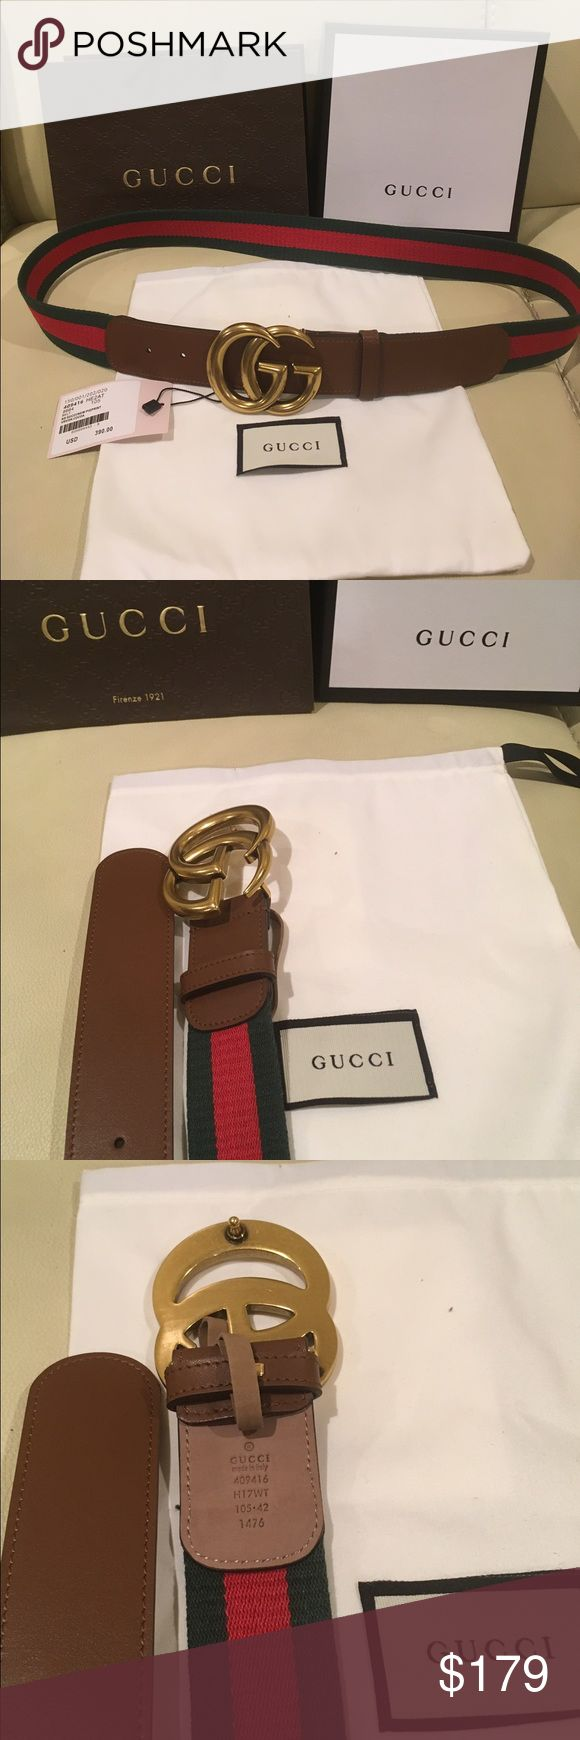 NWT New Gucci Web Belt With Double G Buckle 100% Authentic Signature Web Canvas Belt with a textured leather trim and Double G buckle looks like vantage  Buckle is Antique brass toned hardware like a Gold look into it Green and Red cotton canvas Web with brown leather detail Double G buckle Made In Italy  These Gucci belts runs in different sizes please willy ship within 24hours very fast shipping Please message me with what size you need thank you!!! Gucci Accessories Belts